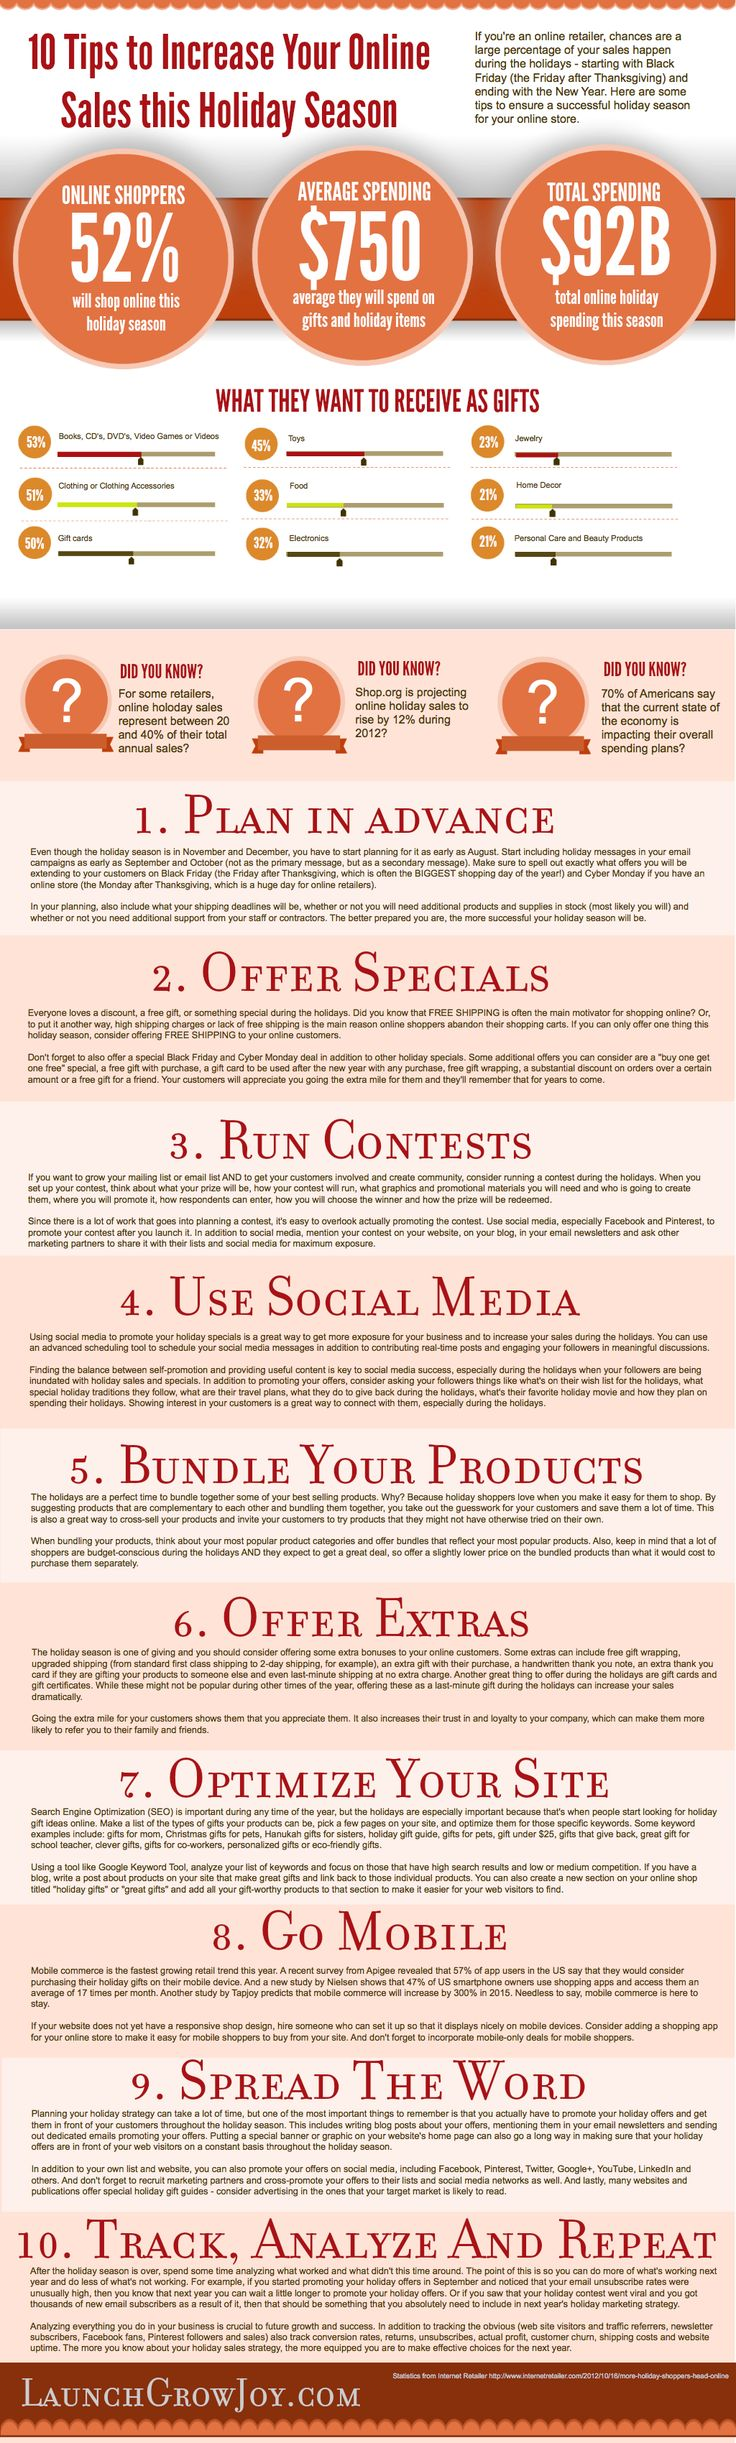 PLEASE REPIN - 10 Tips to increase your online sales this holiday season http://launchgrowjoy.com/10-tips-to-increase-sales-on-your-website-during-the-holiday-season/#